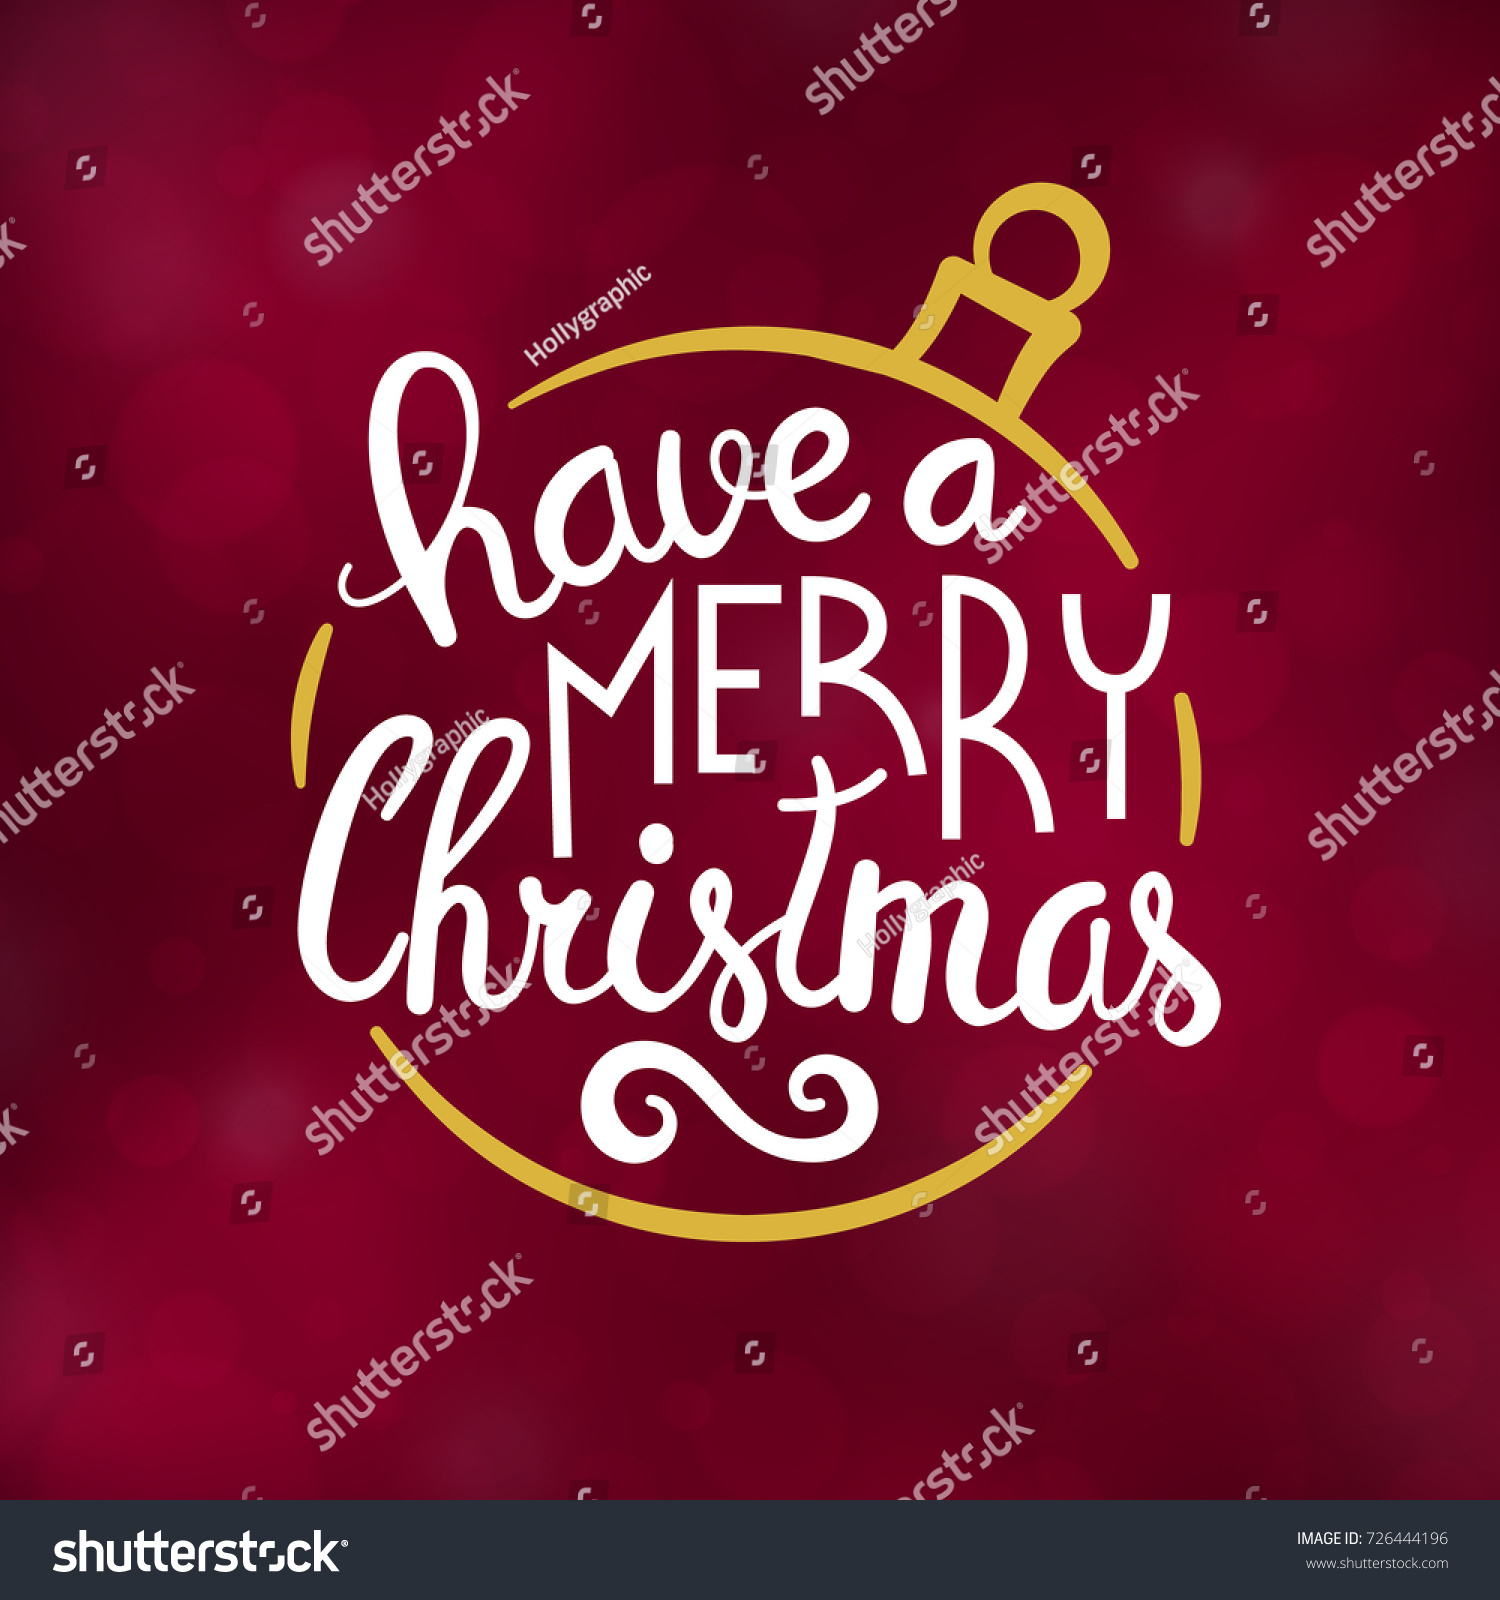 Merry christmas typography design winter season stock vector merry christmas typography design winter season greeting card vector illustration kristyandbryce Choice Image